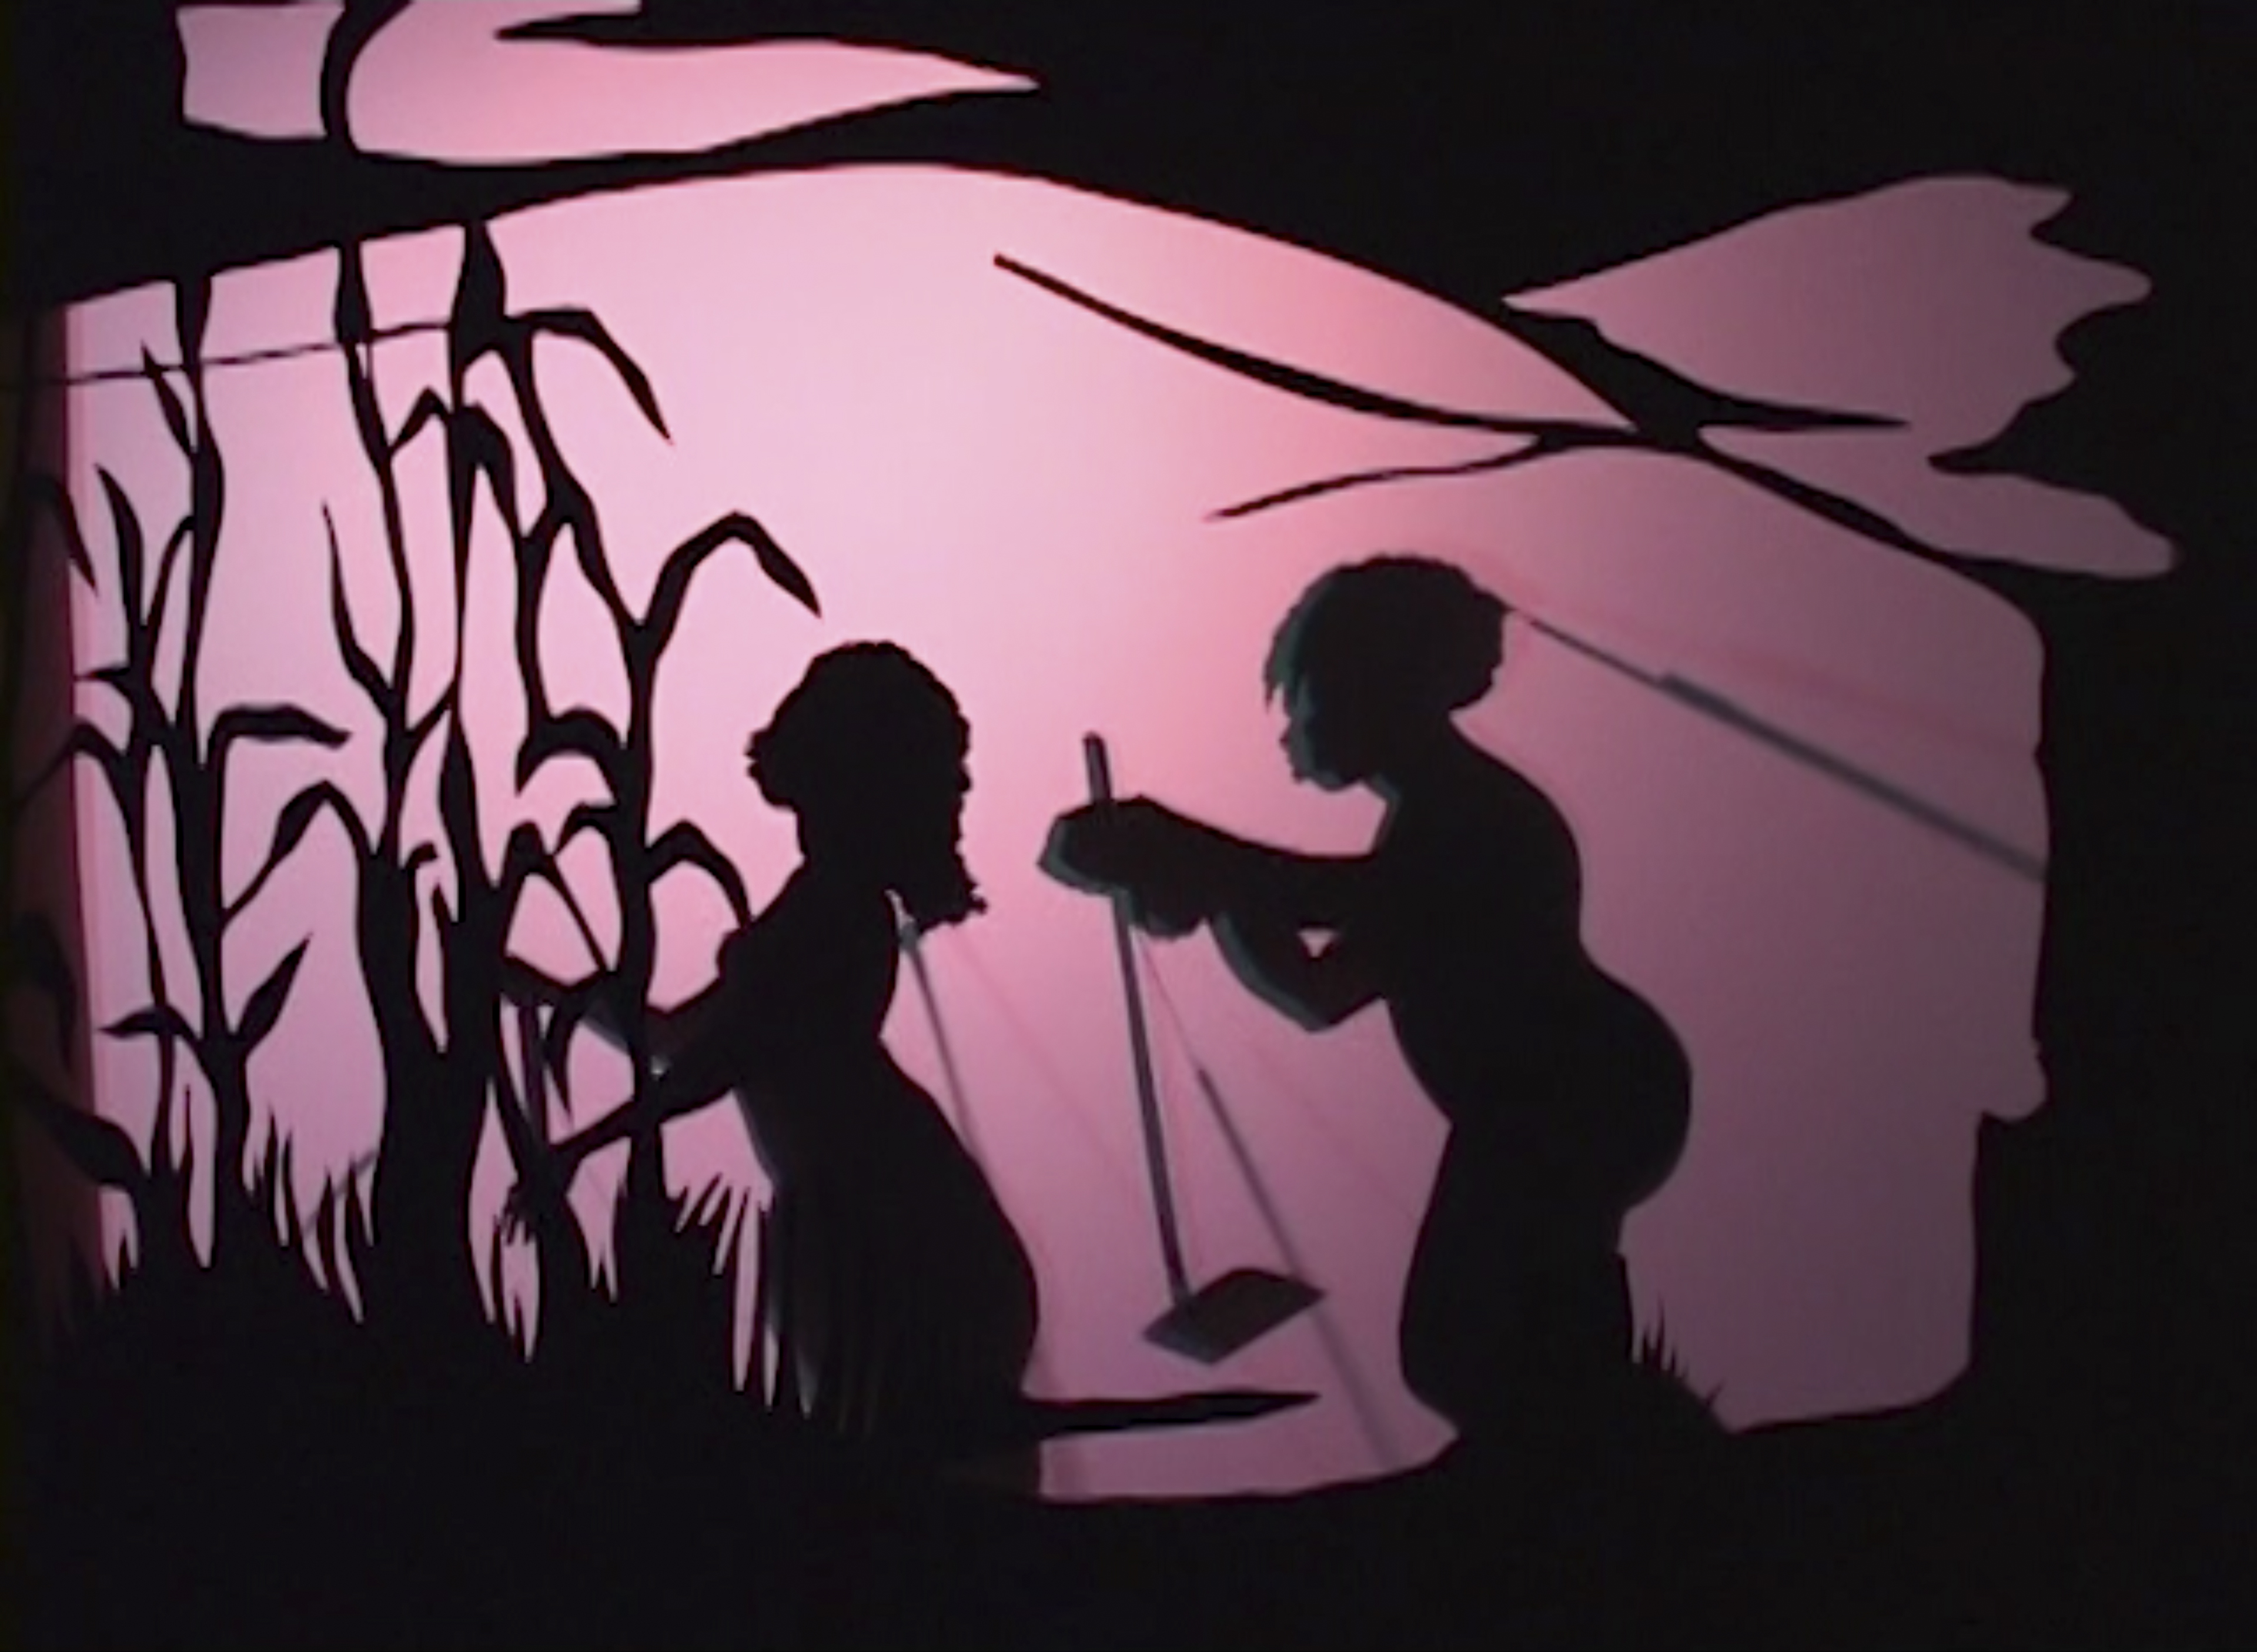 silhouette of two people walking in front of a pink background